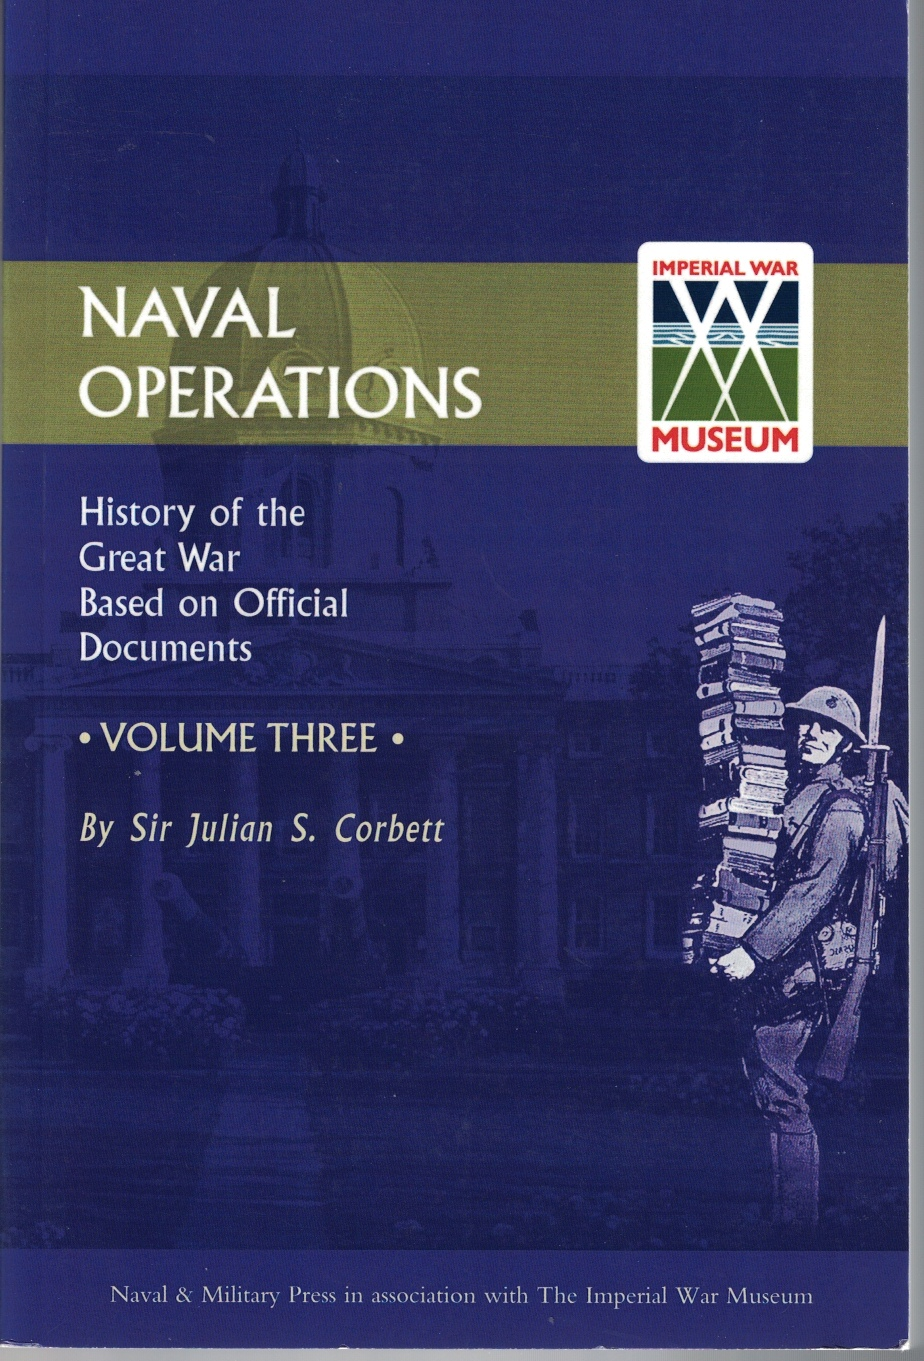 Image for Naval Operations: History of the Great War Based on Official Documents, Volume III [3]